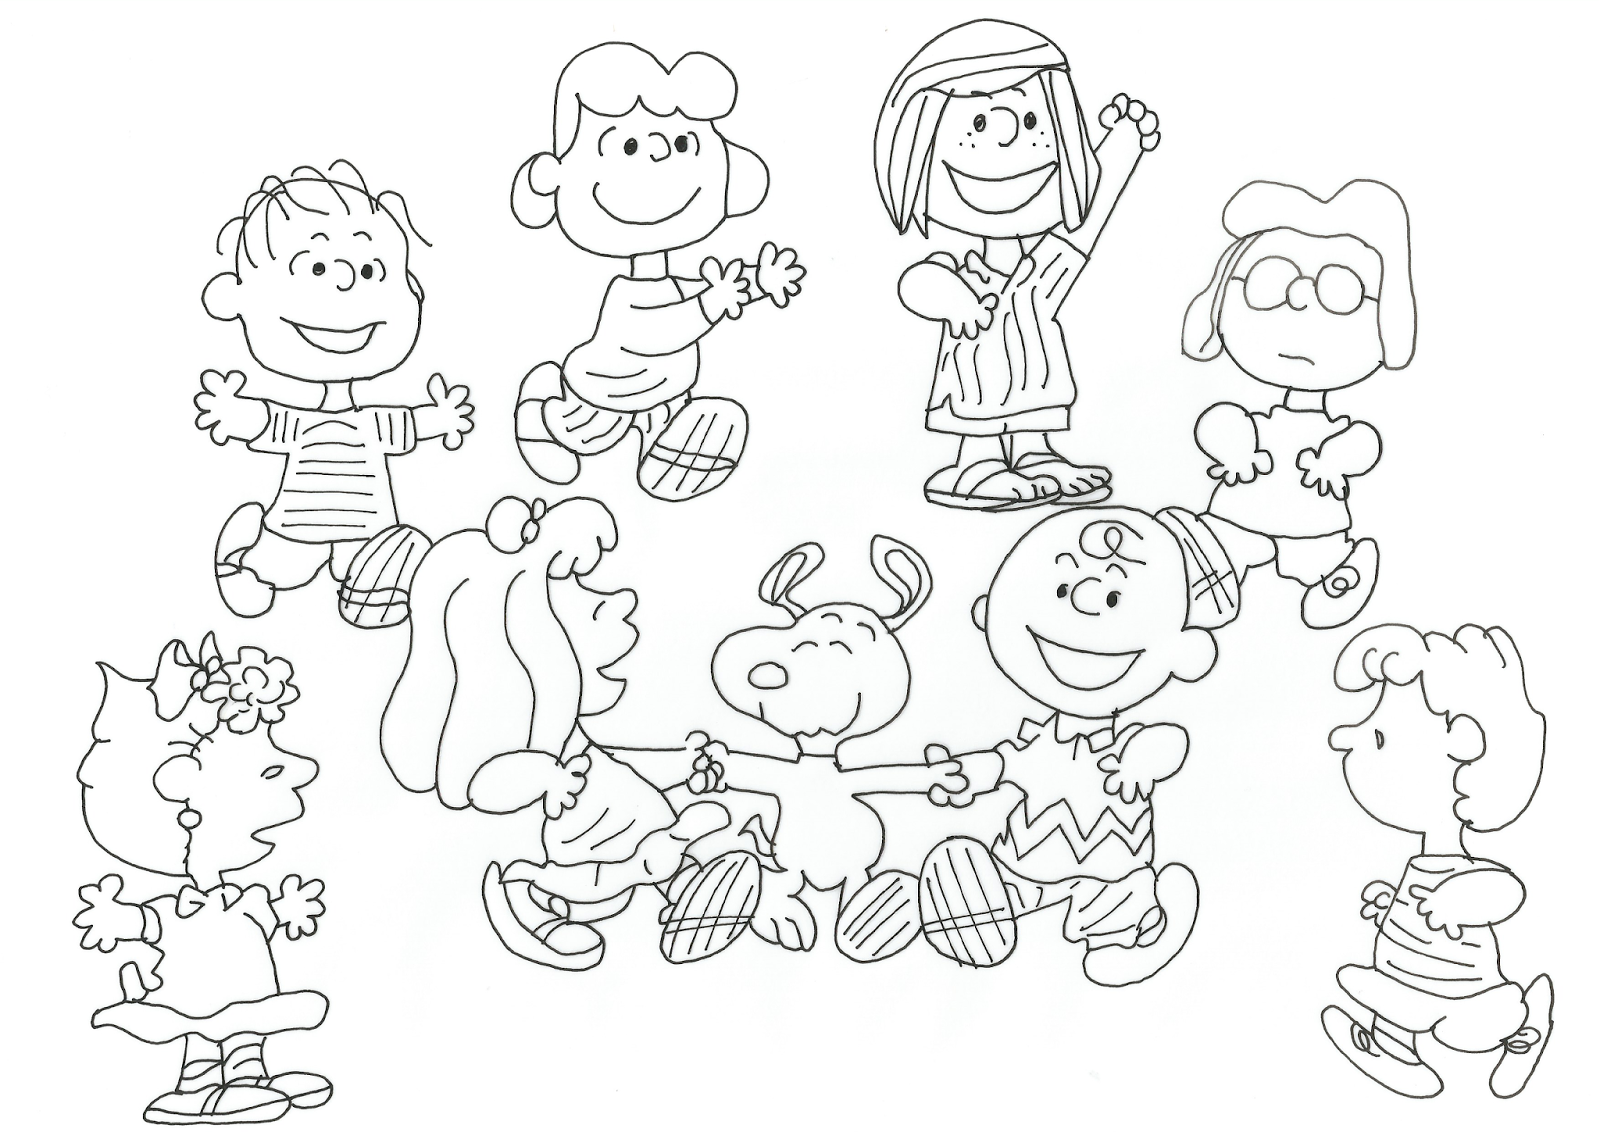 1600x1132 Free Charlie Brown Snoopy And Peanuts Coloring Pages Charlie